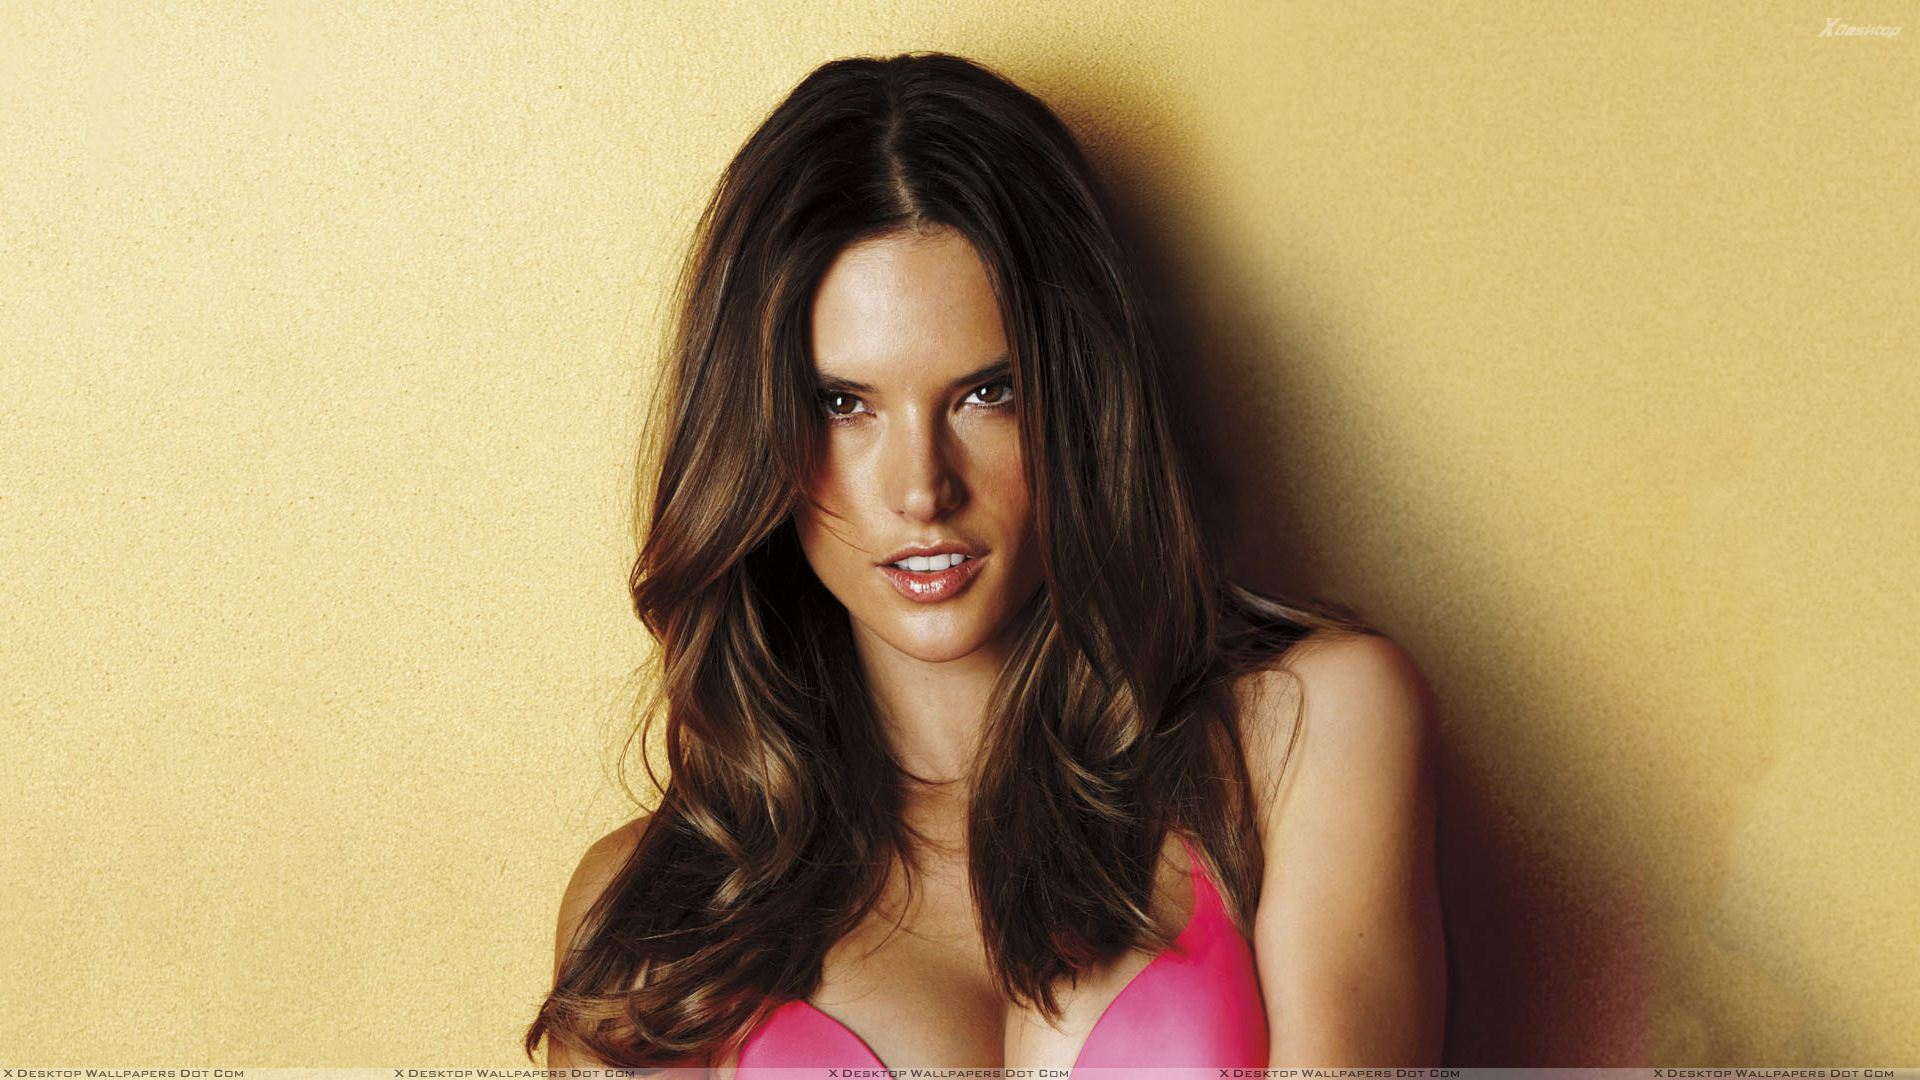 Alessandra Ambrosio Wallpapers Photos Images In HD